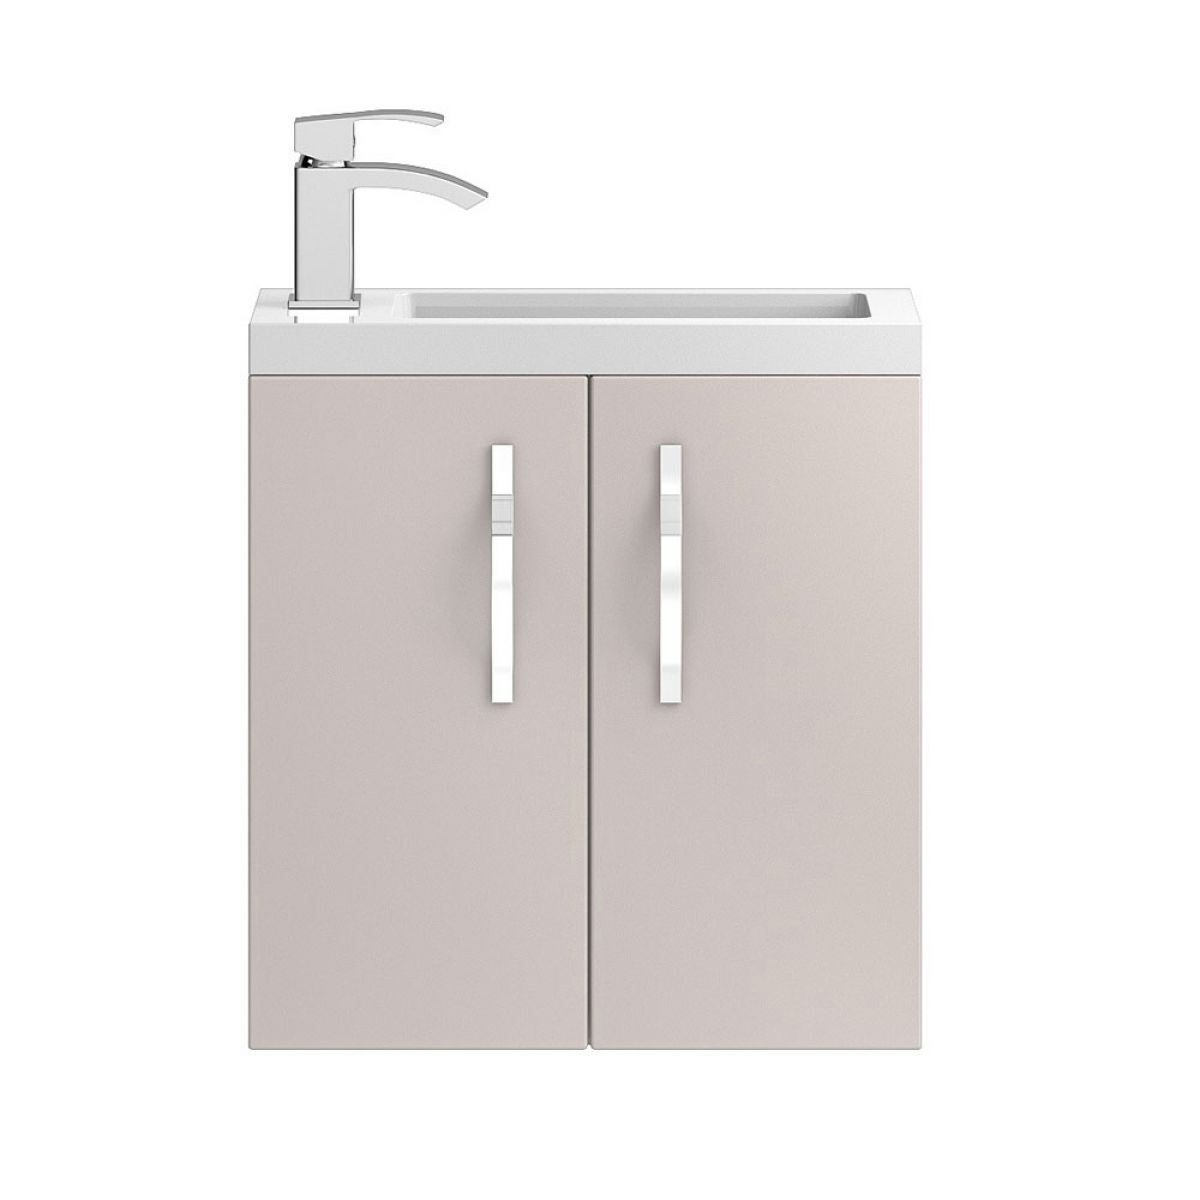 Hudson Reed Apollo Compact Gloss Cashmere Wall Hung Vanity Unit 500mm